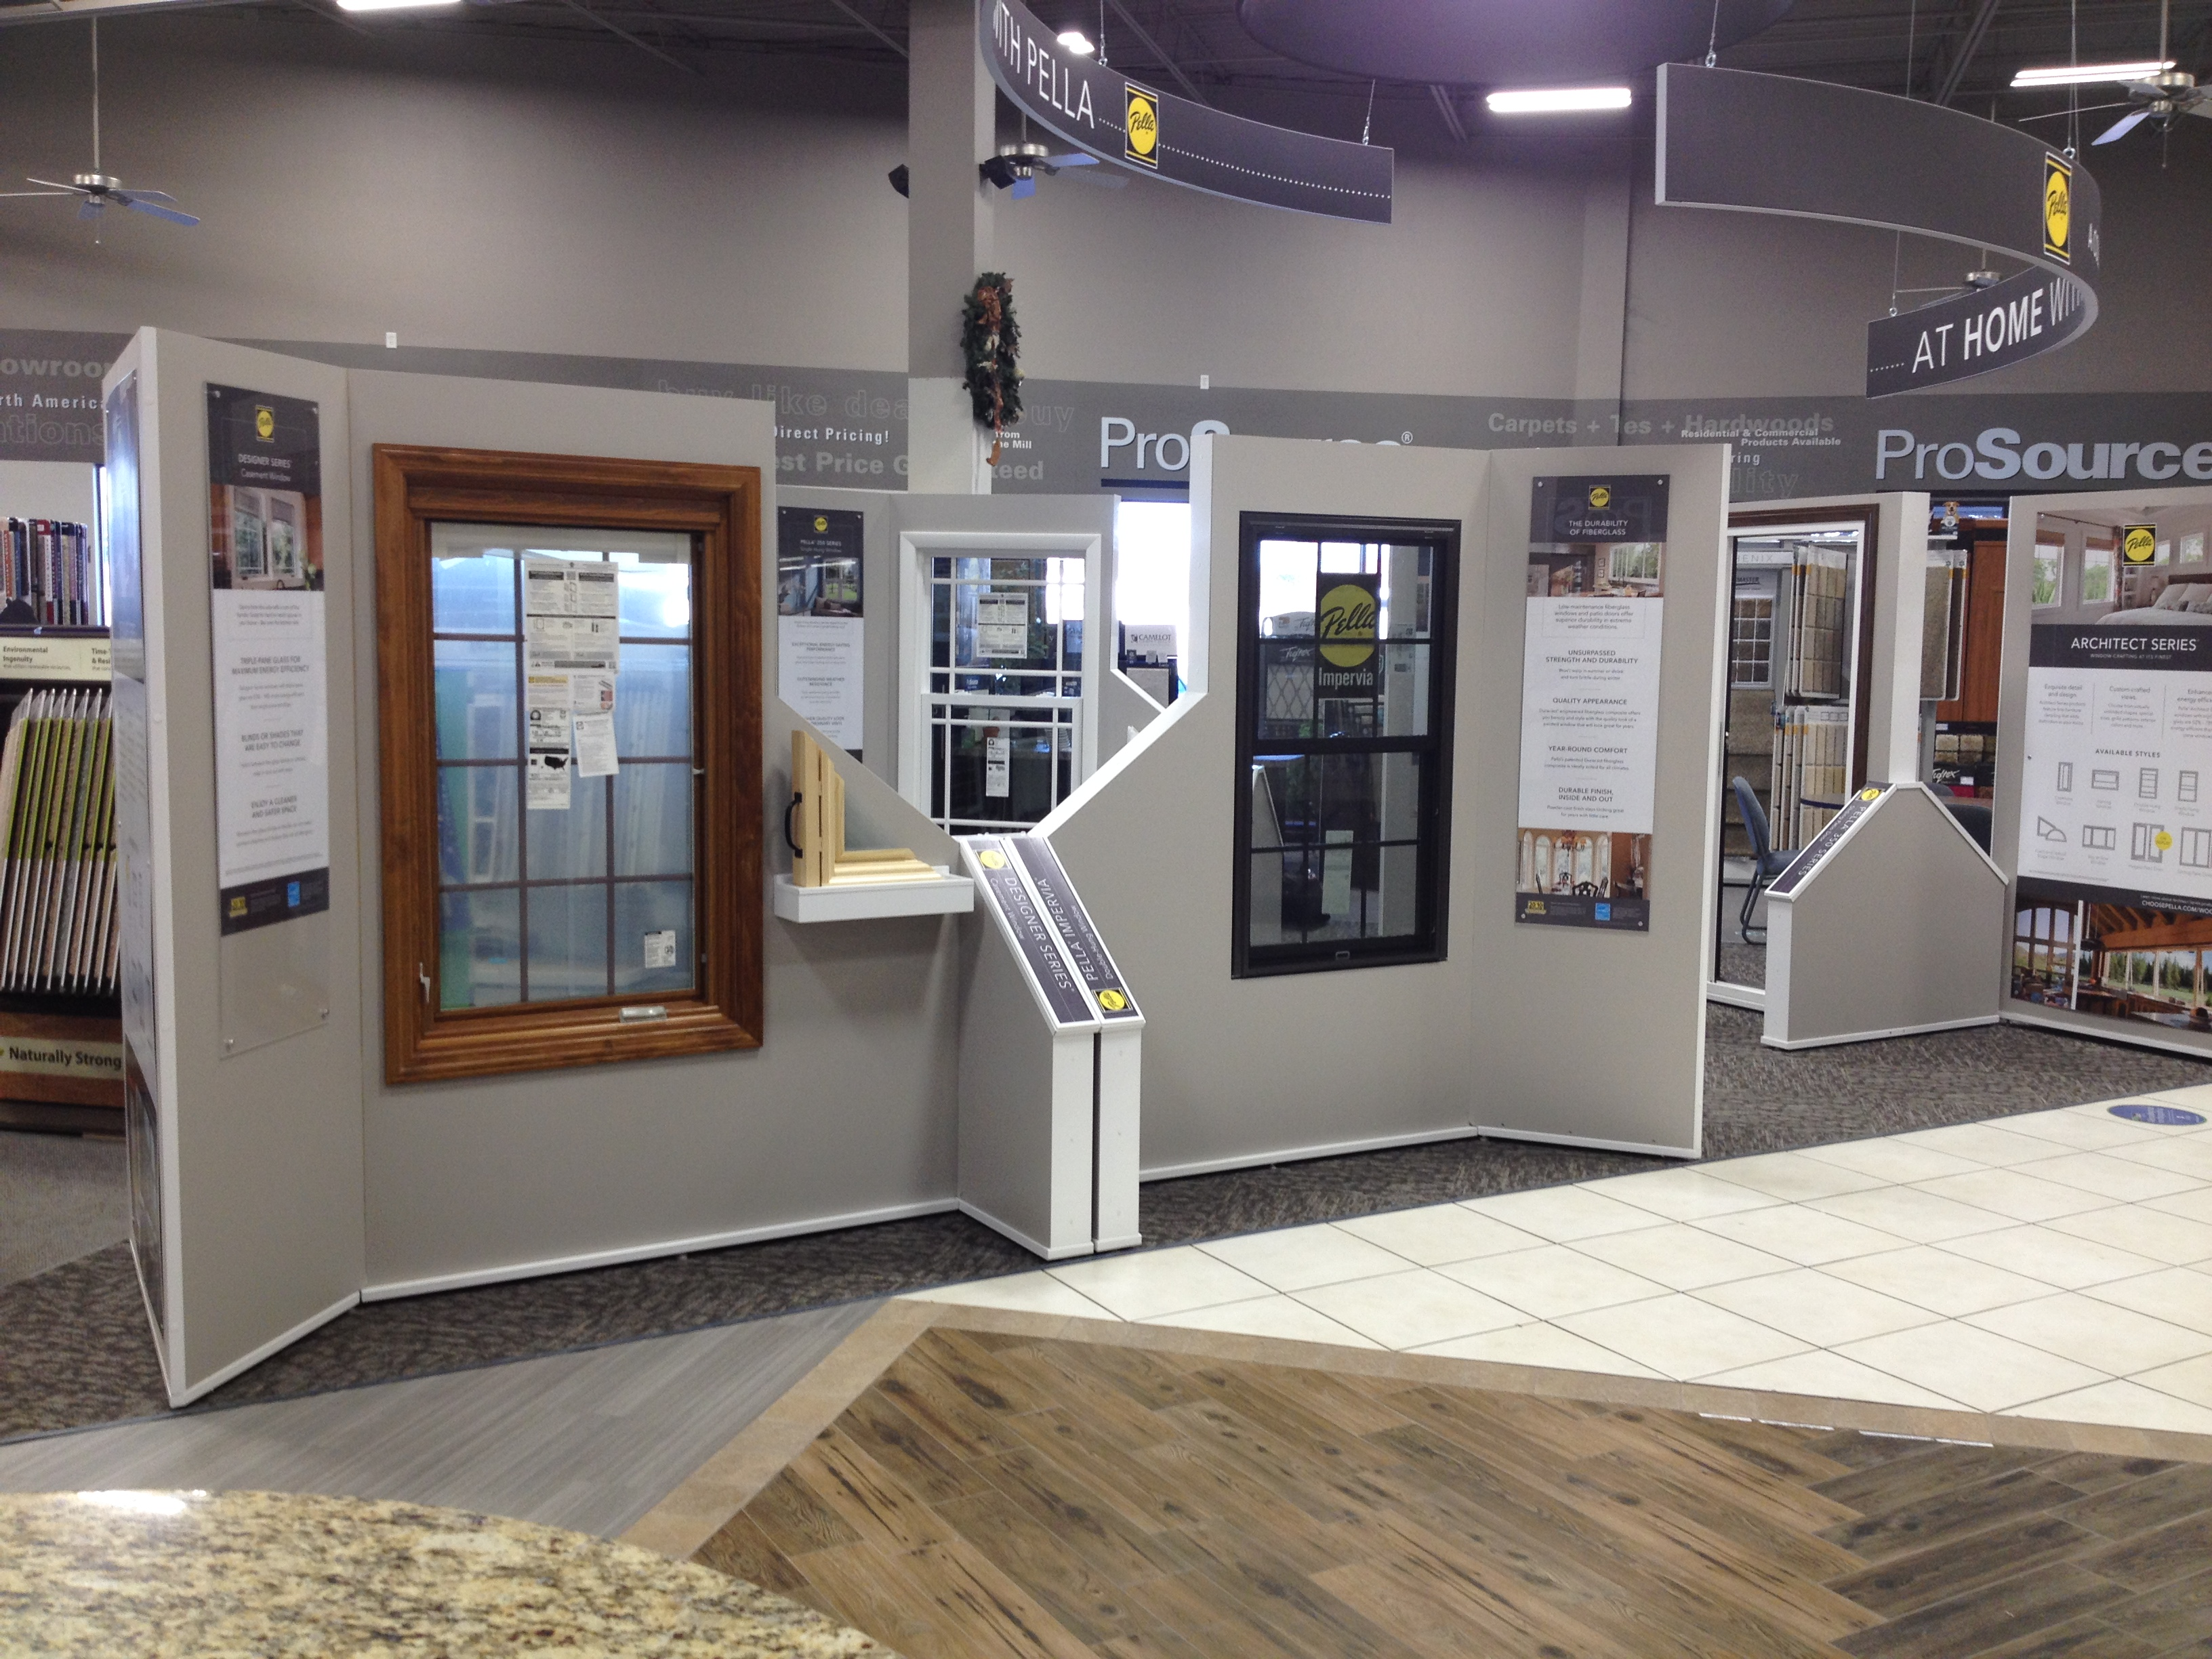 Prosource Stores - Pella Window and Door Showroom